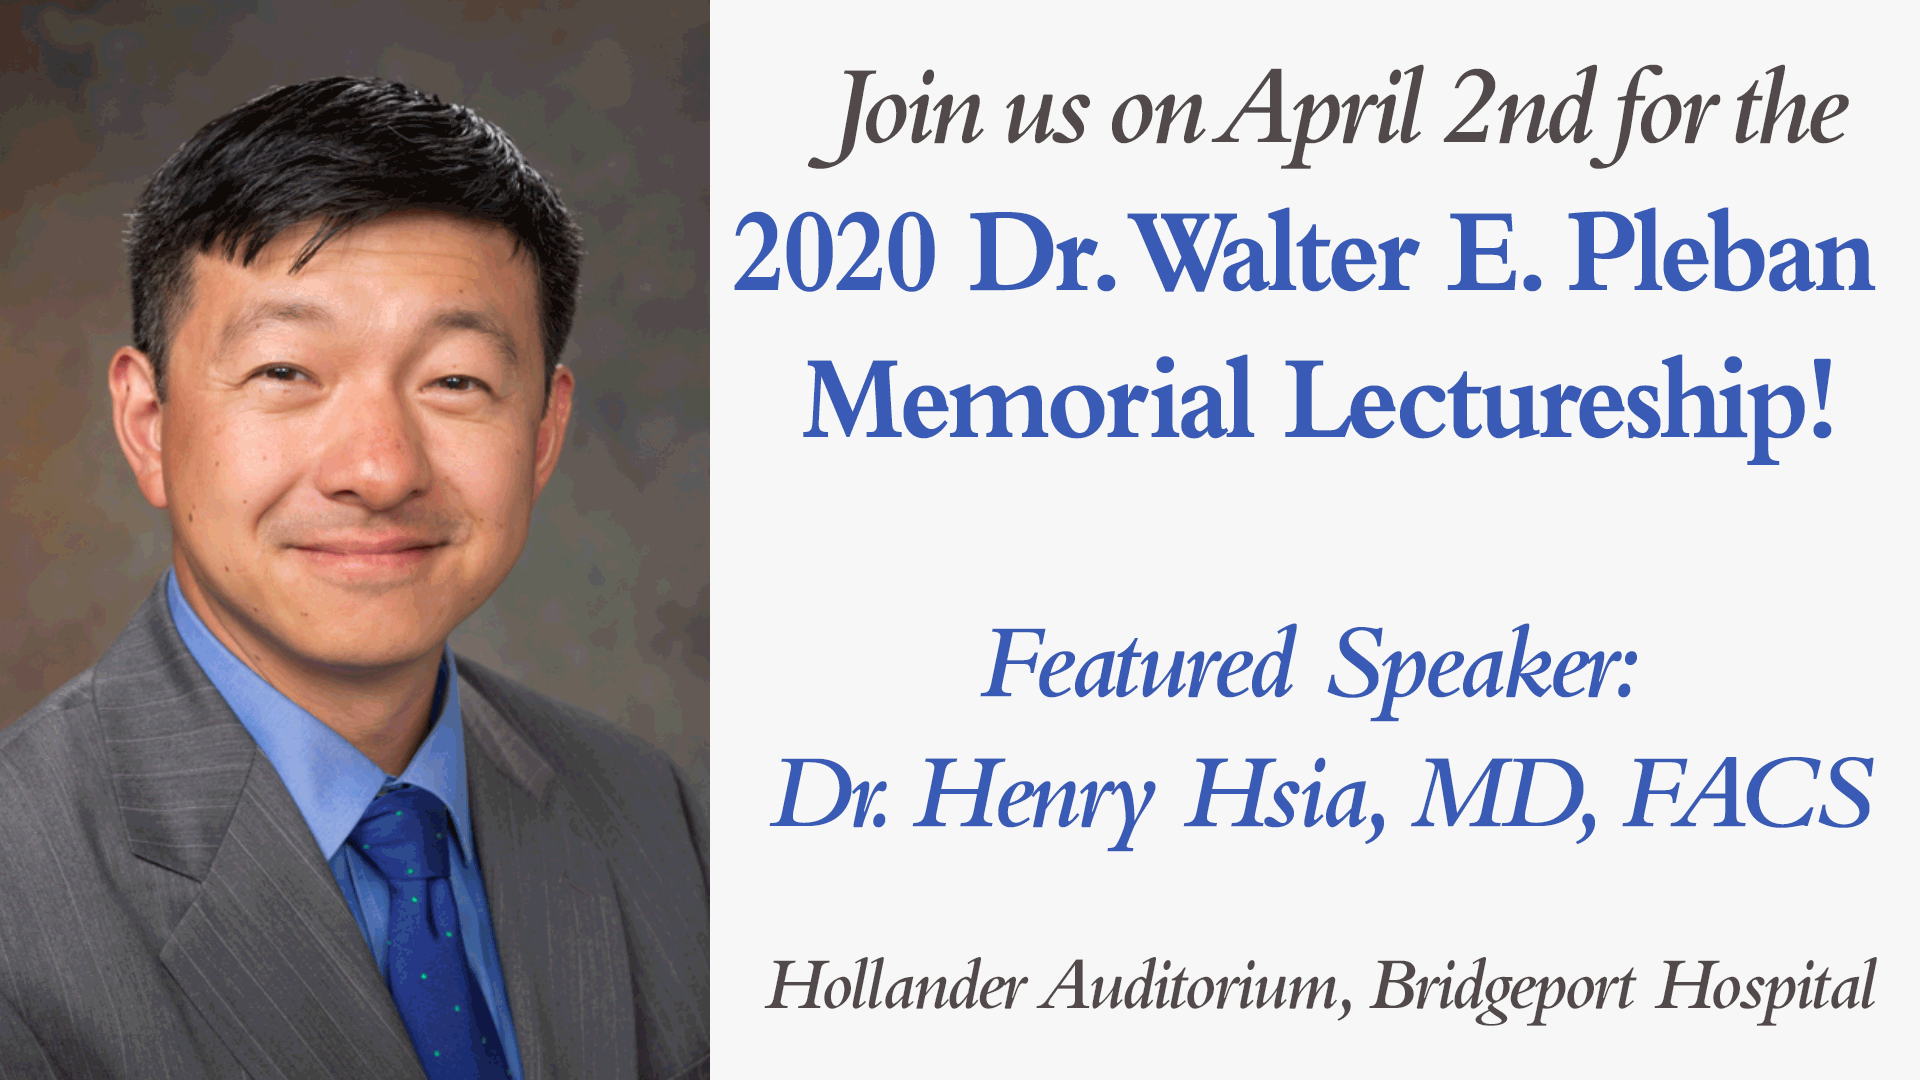 2020 Pleban Memorial Lectureship with Dr. Henry Hsia - Bridgeport Hospital